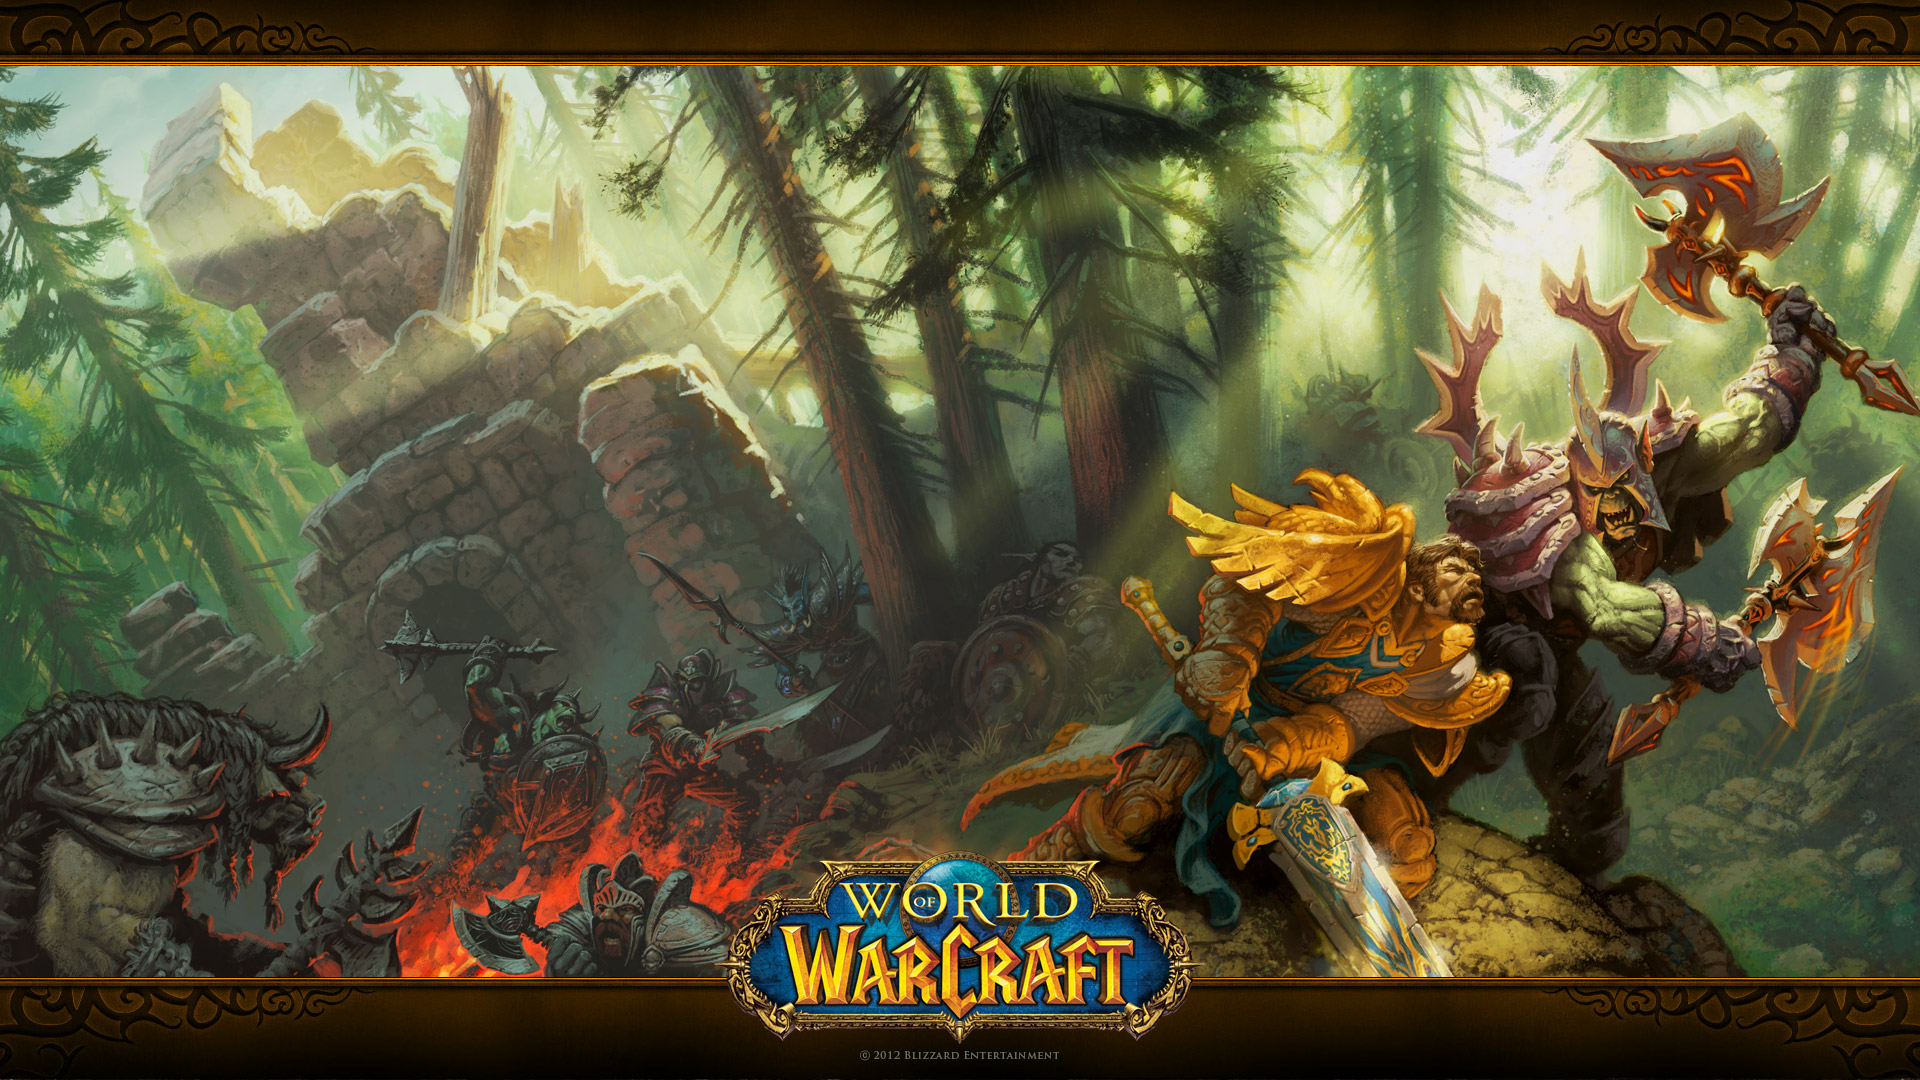 'World Of Warcraft' Sheds Another 600,000 Subscribers